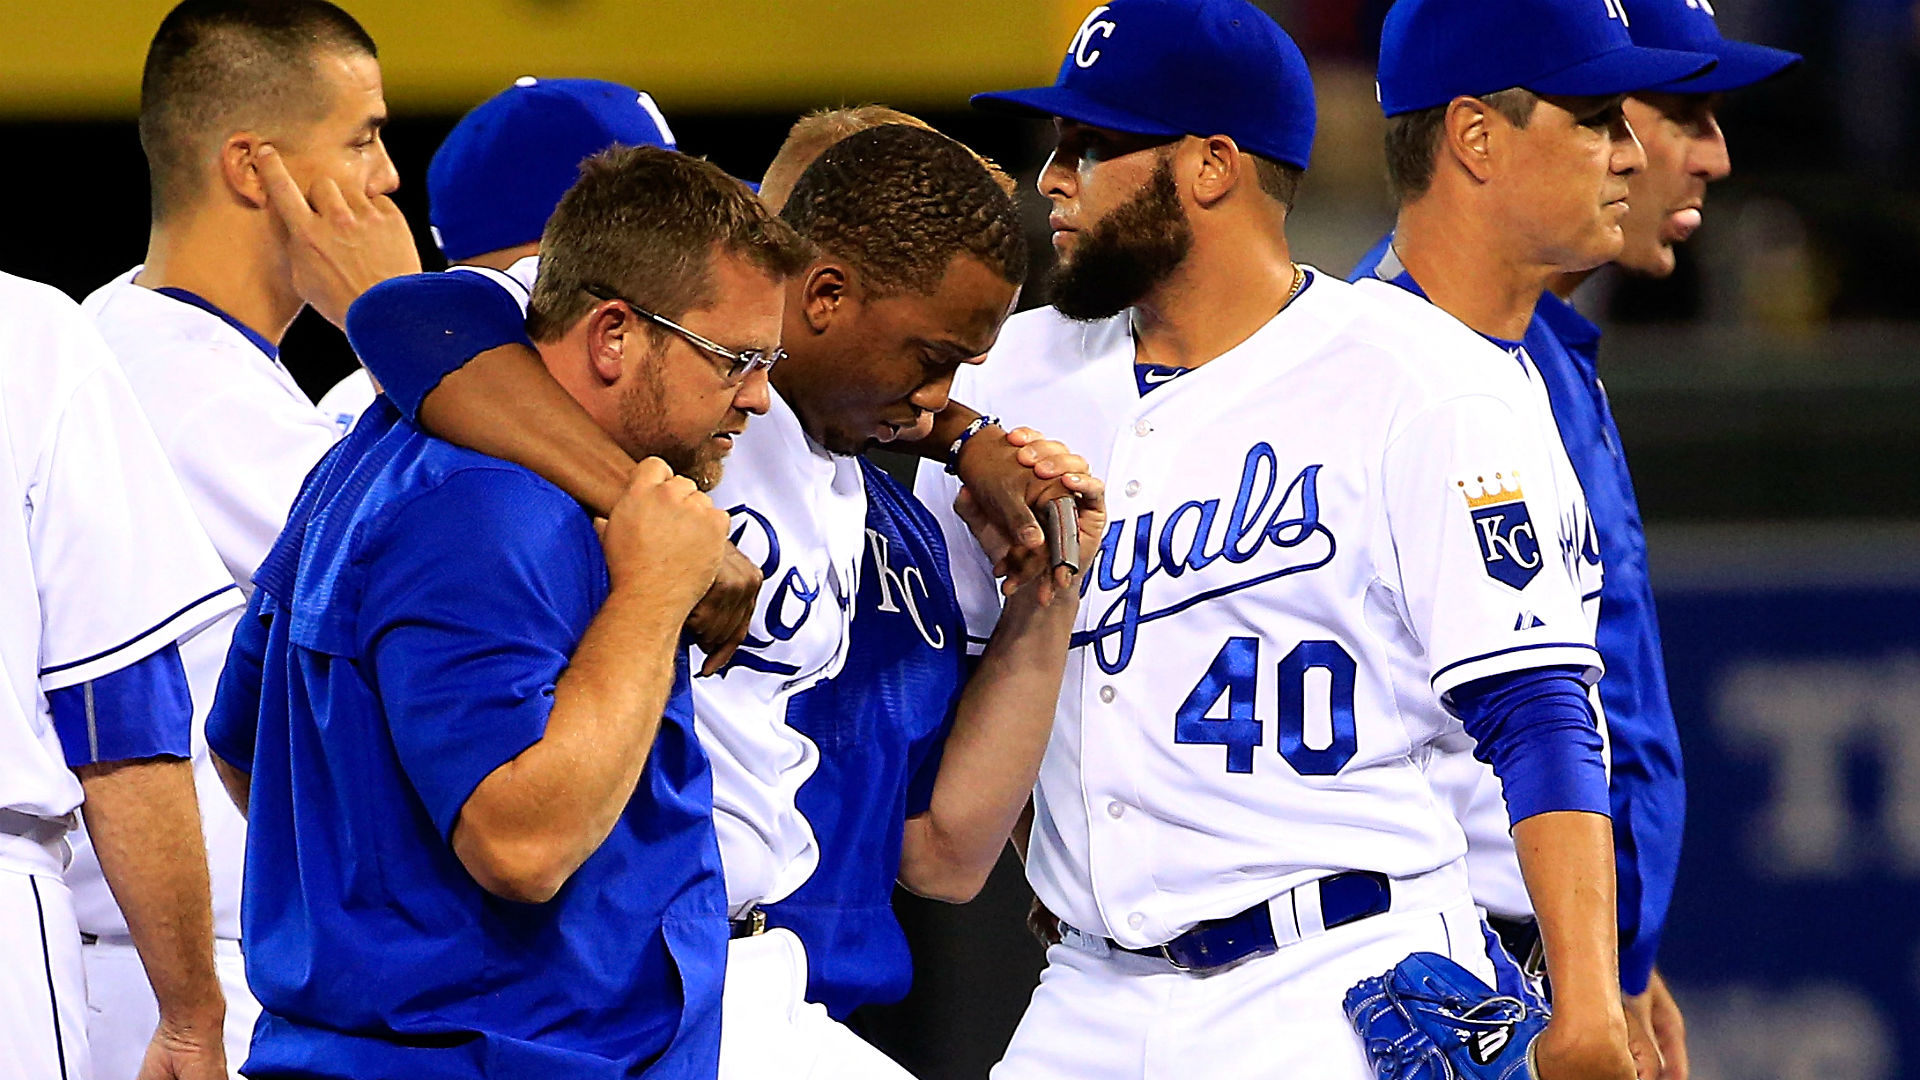 Royals SS Alcides Escobar suffers knee sprain after hard slide by Brett Lawrie